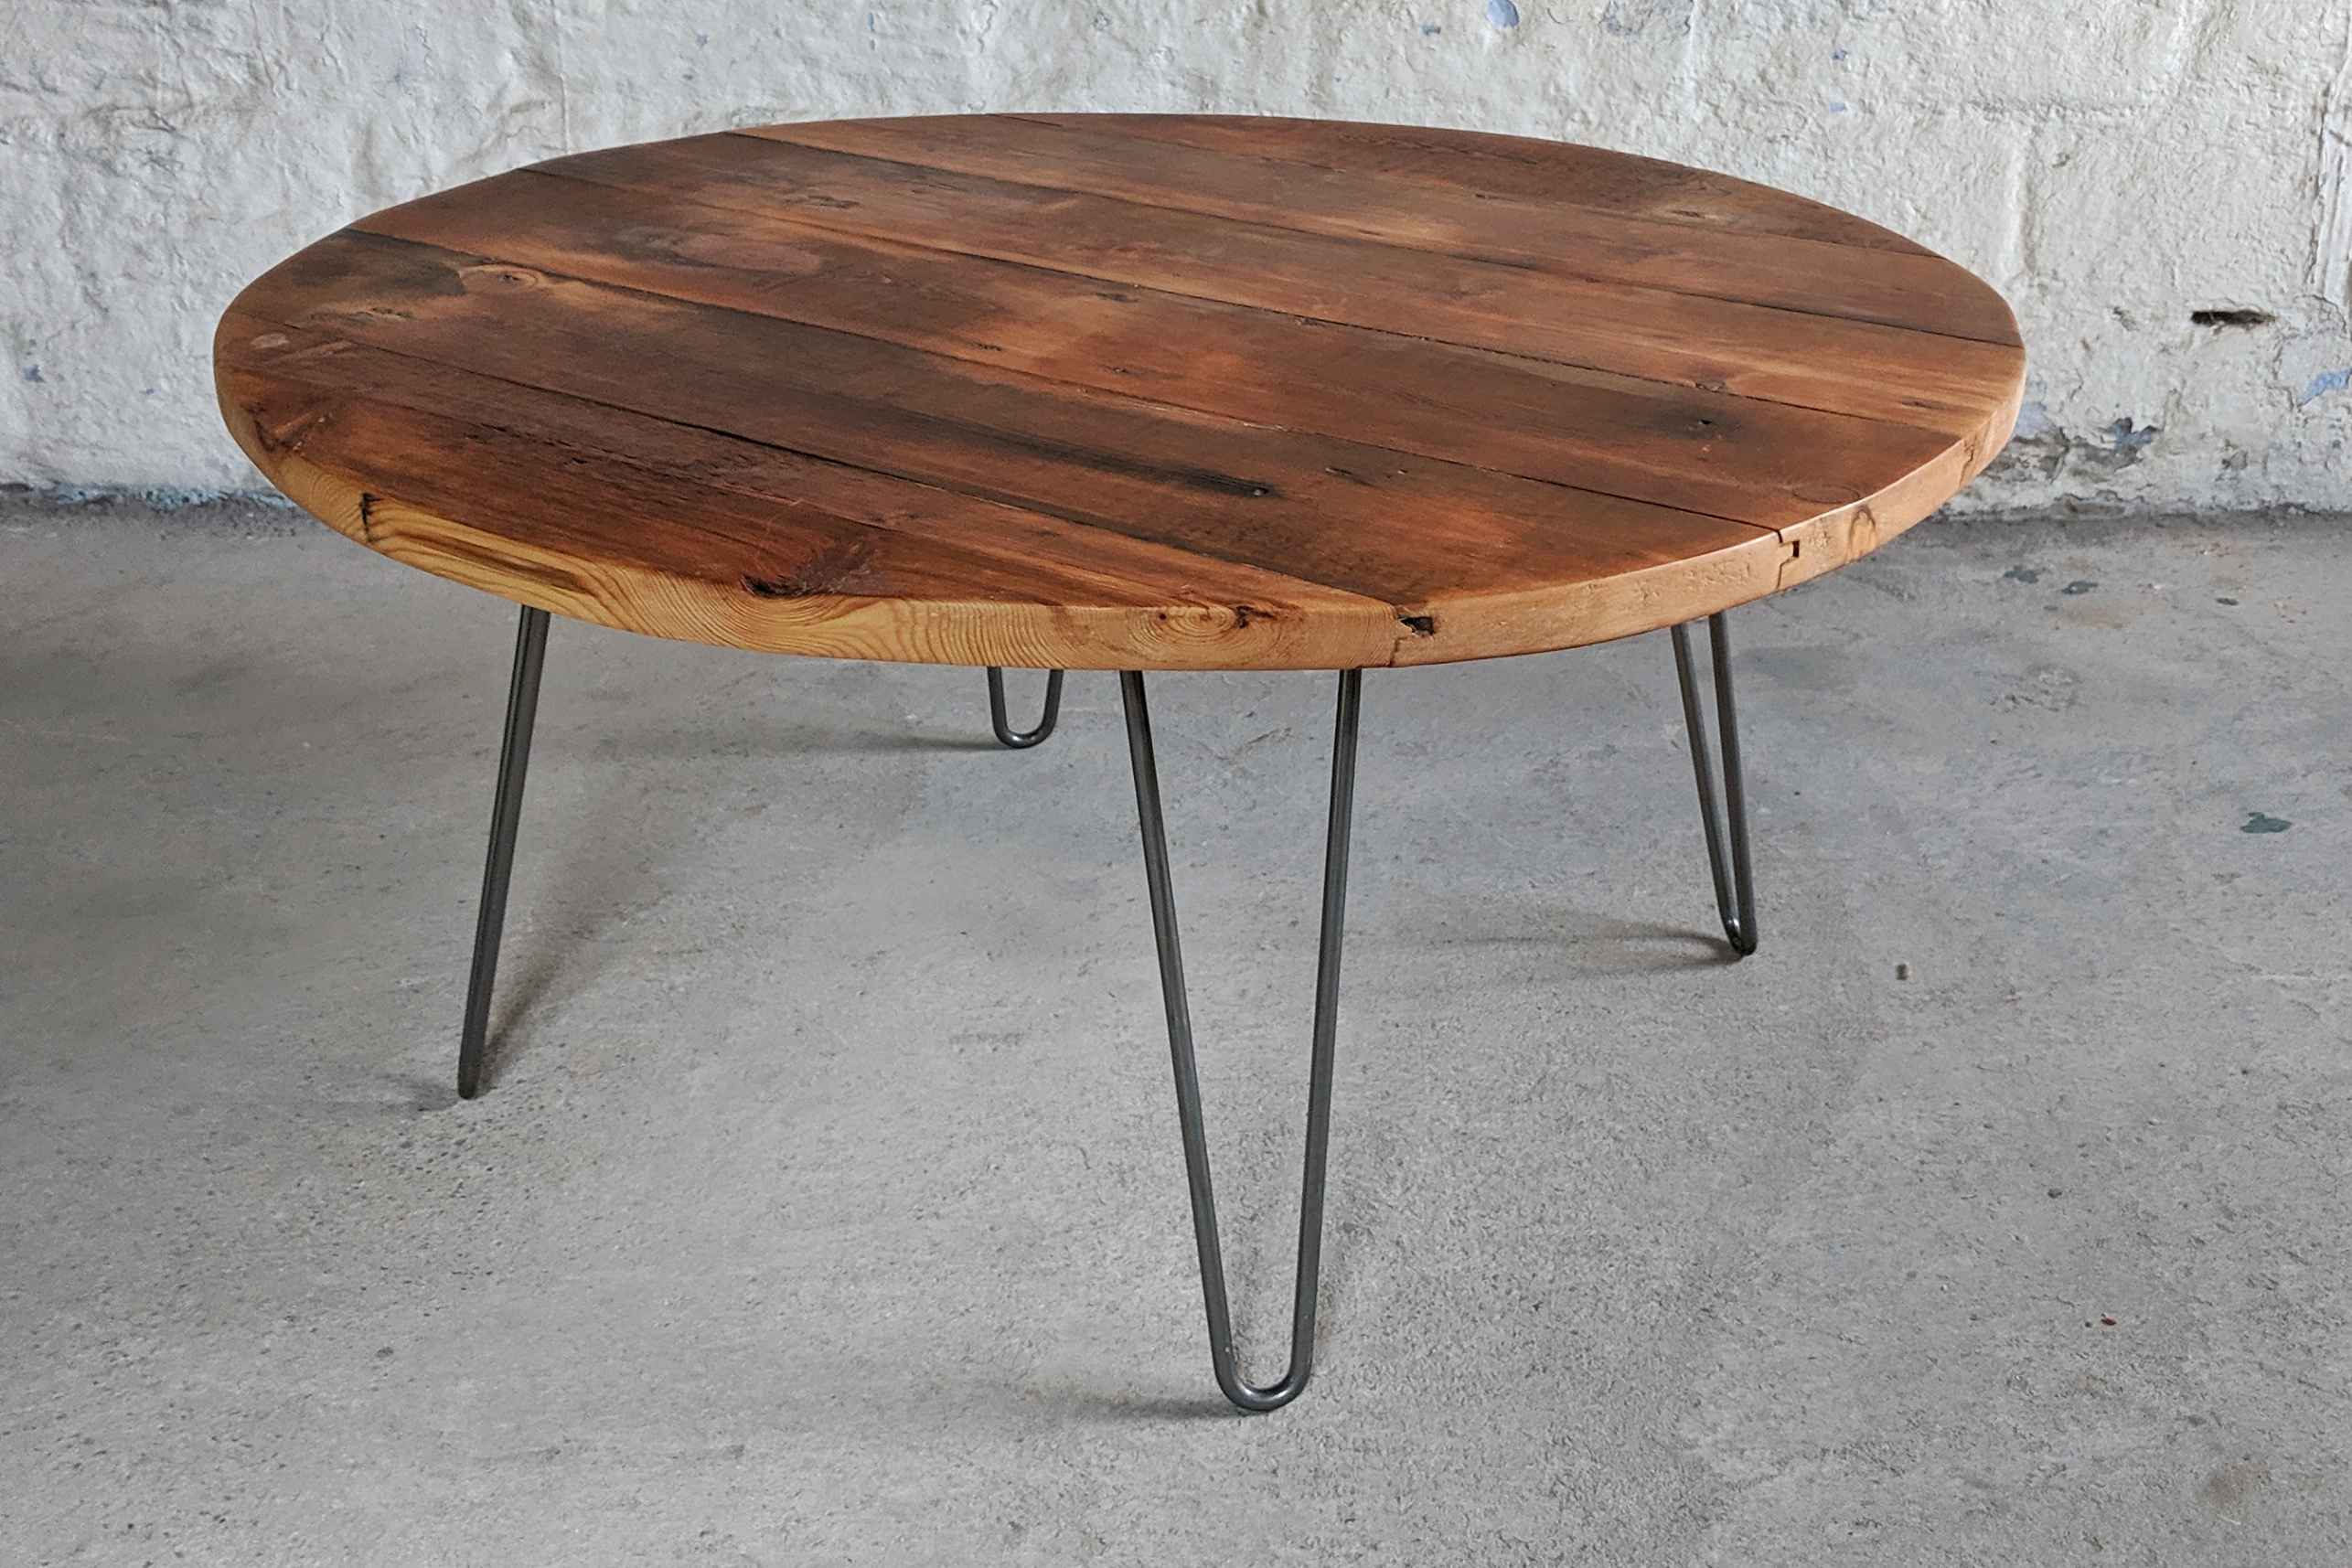 Pitch Pine Floorboard Round Coffee Table On Metal Hairpin Legs